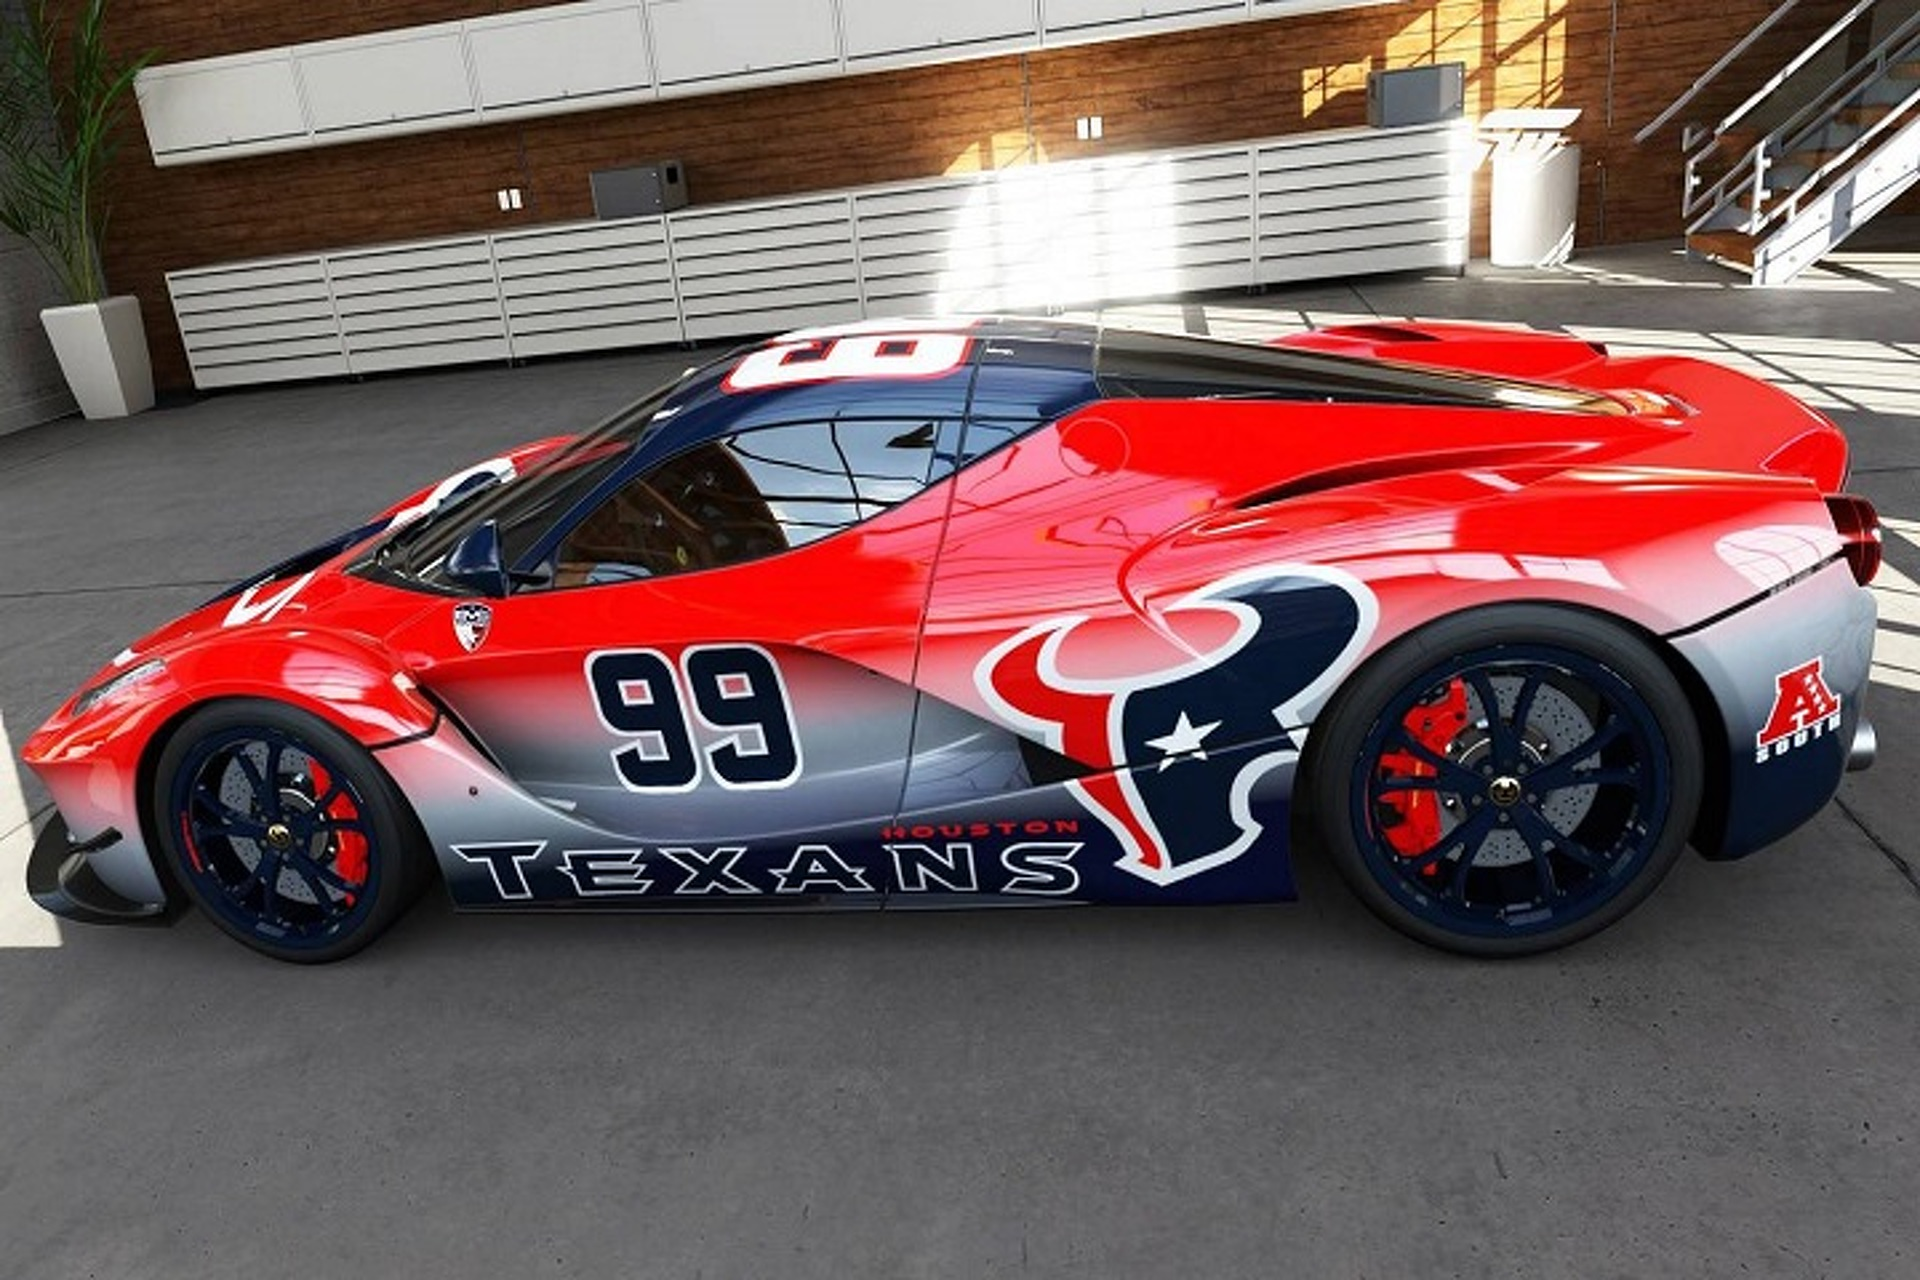 Ferrari LaFerrari Gets a Houston Texans J.J. Watt Makeover